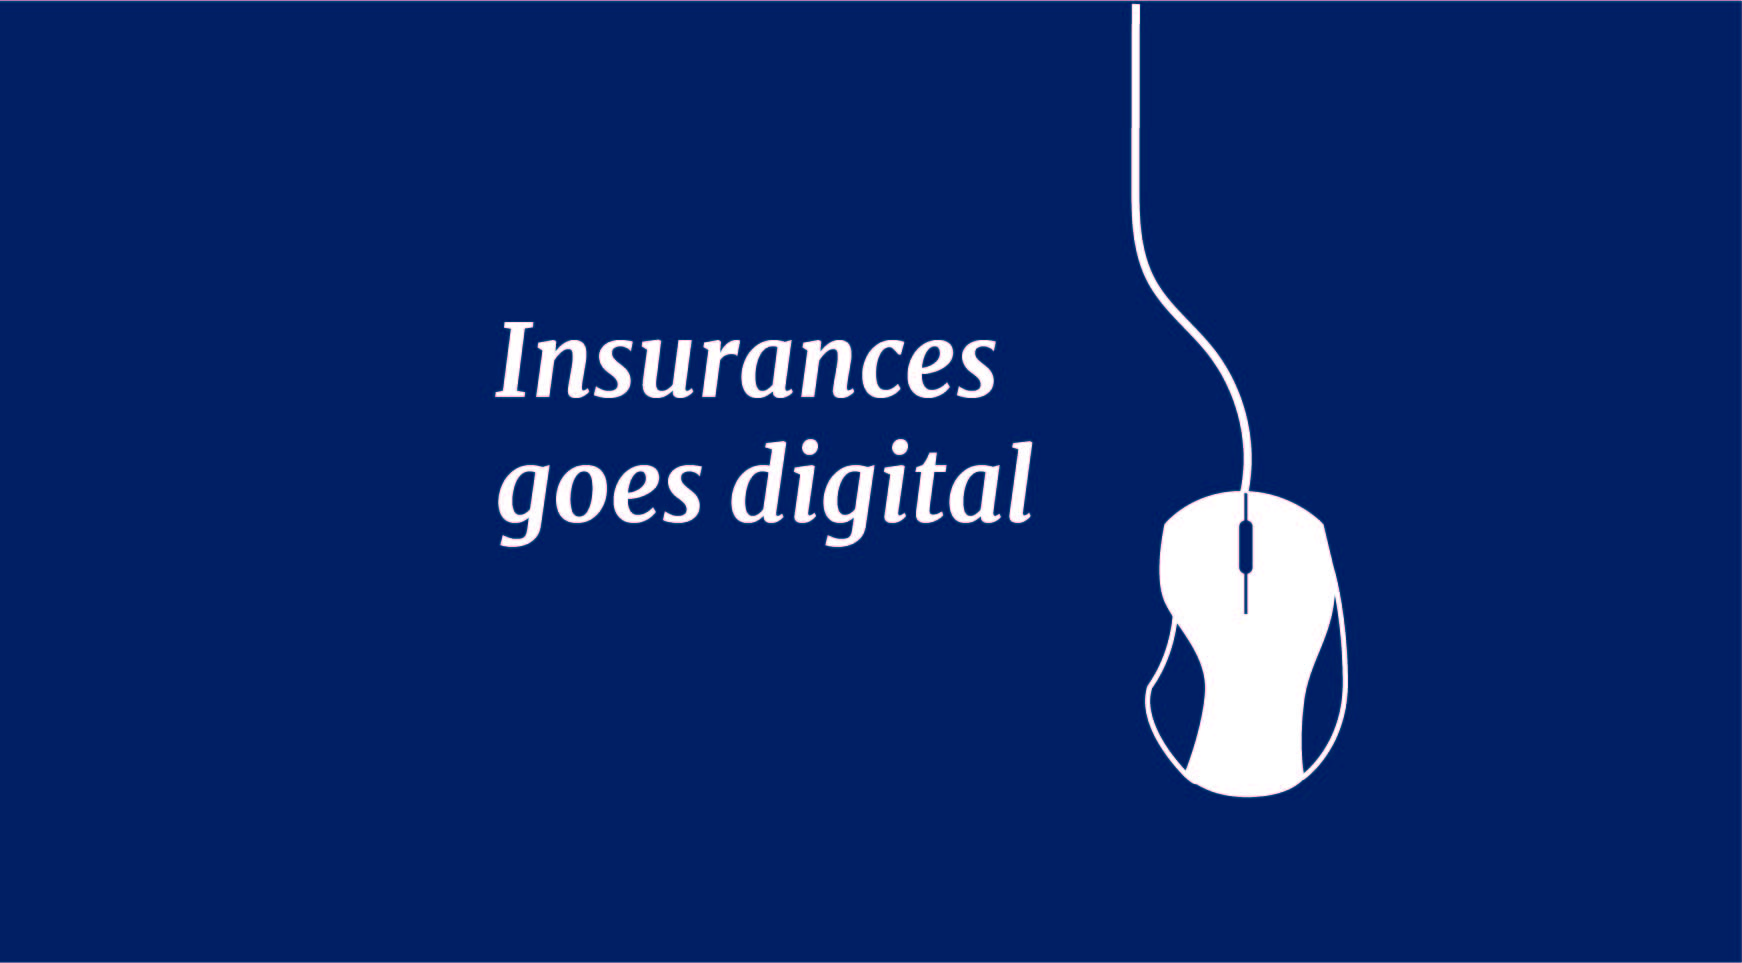 AXXCON Digital Insurances